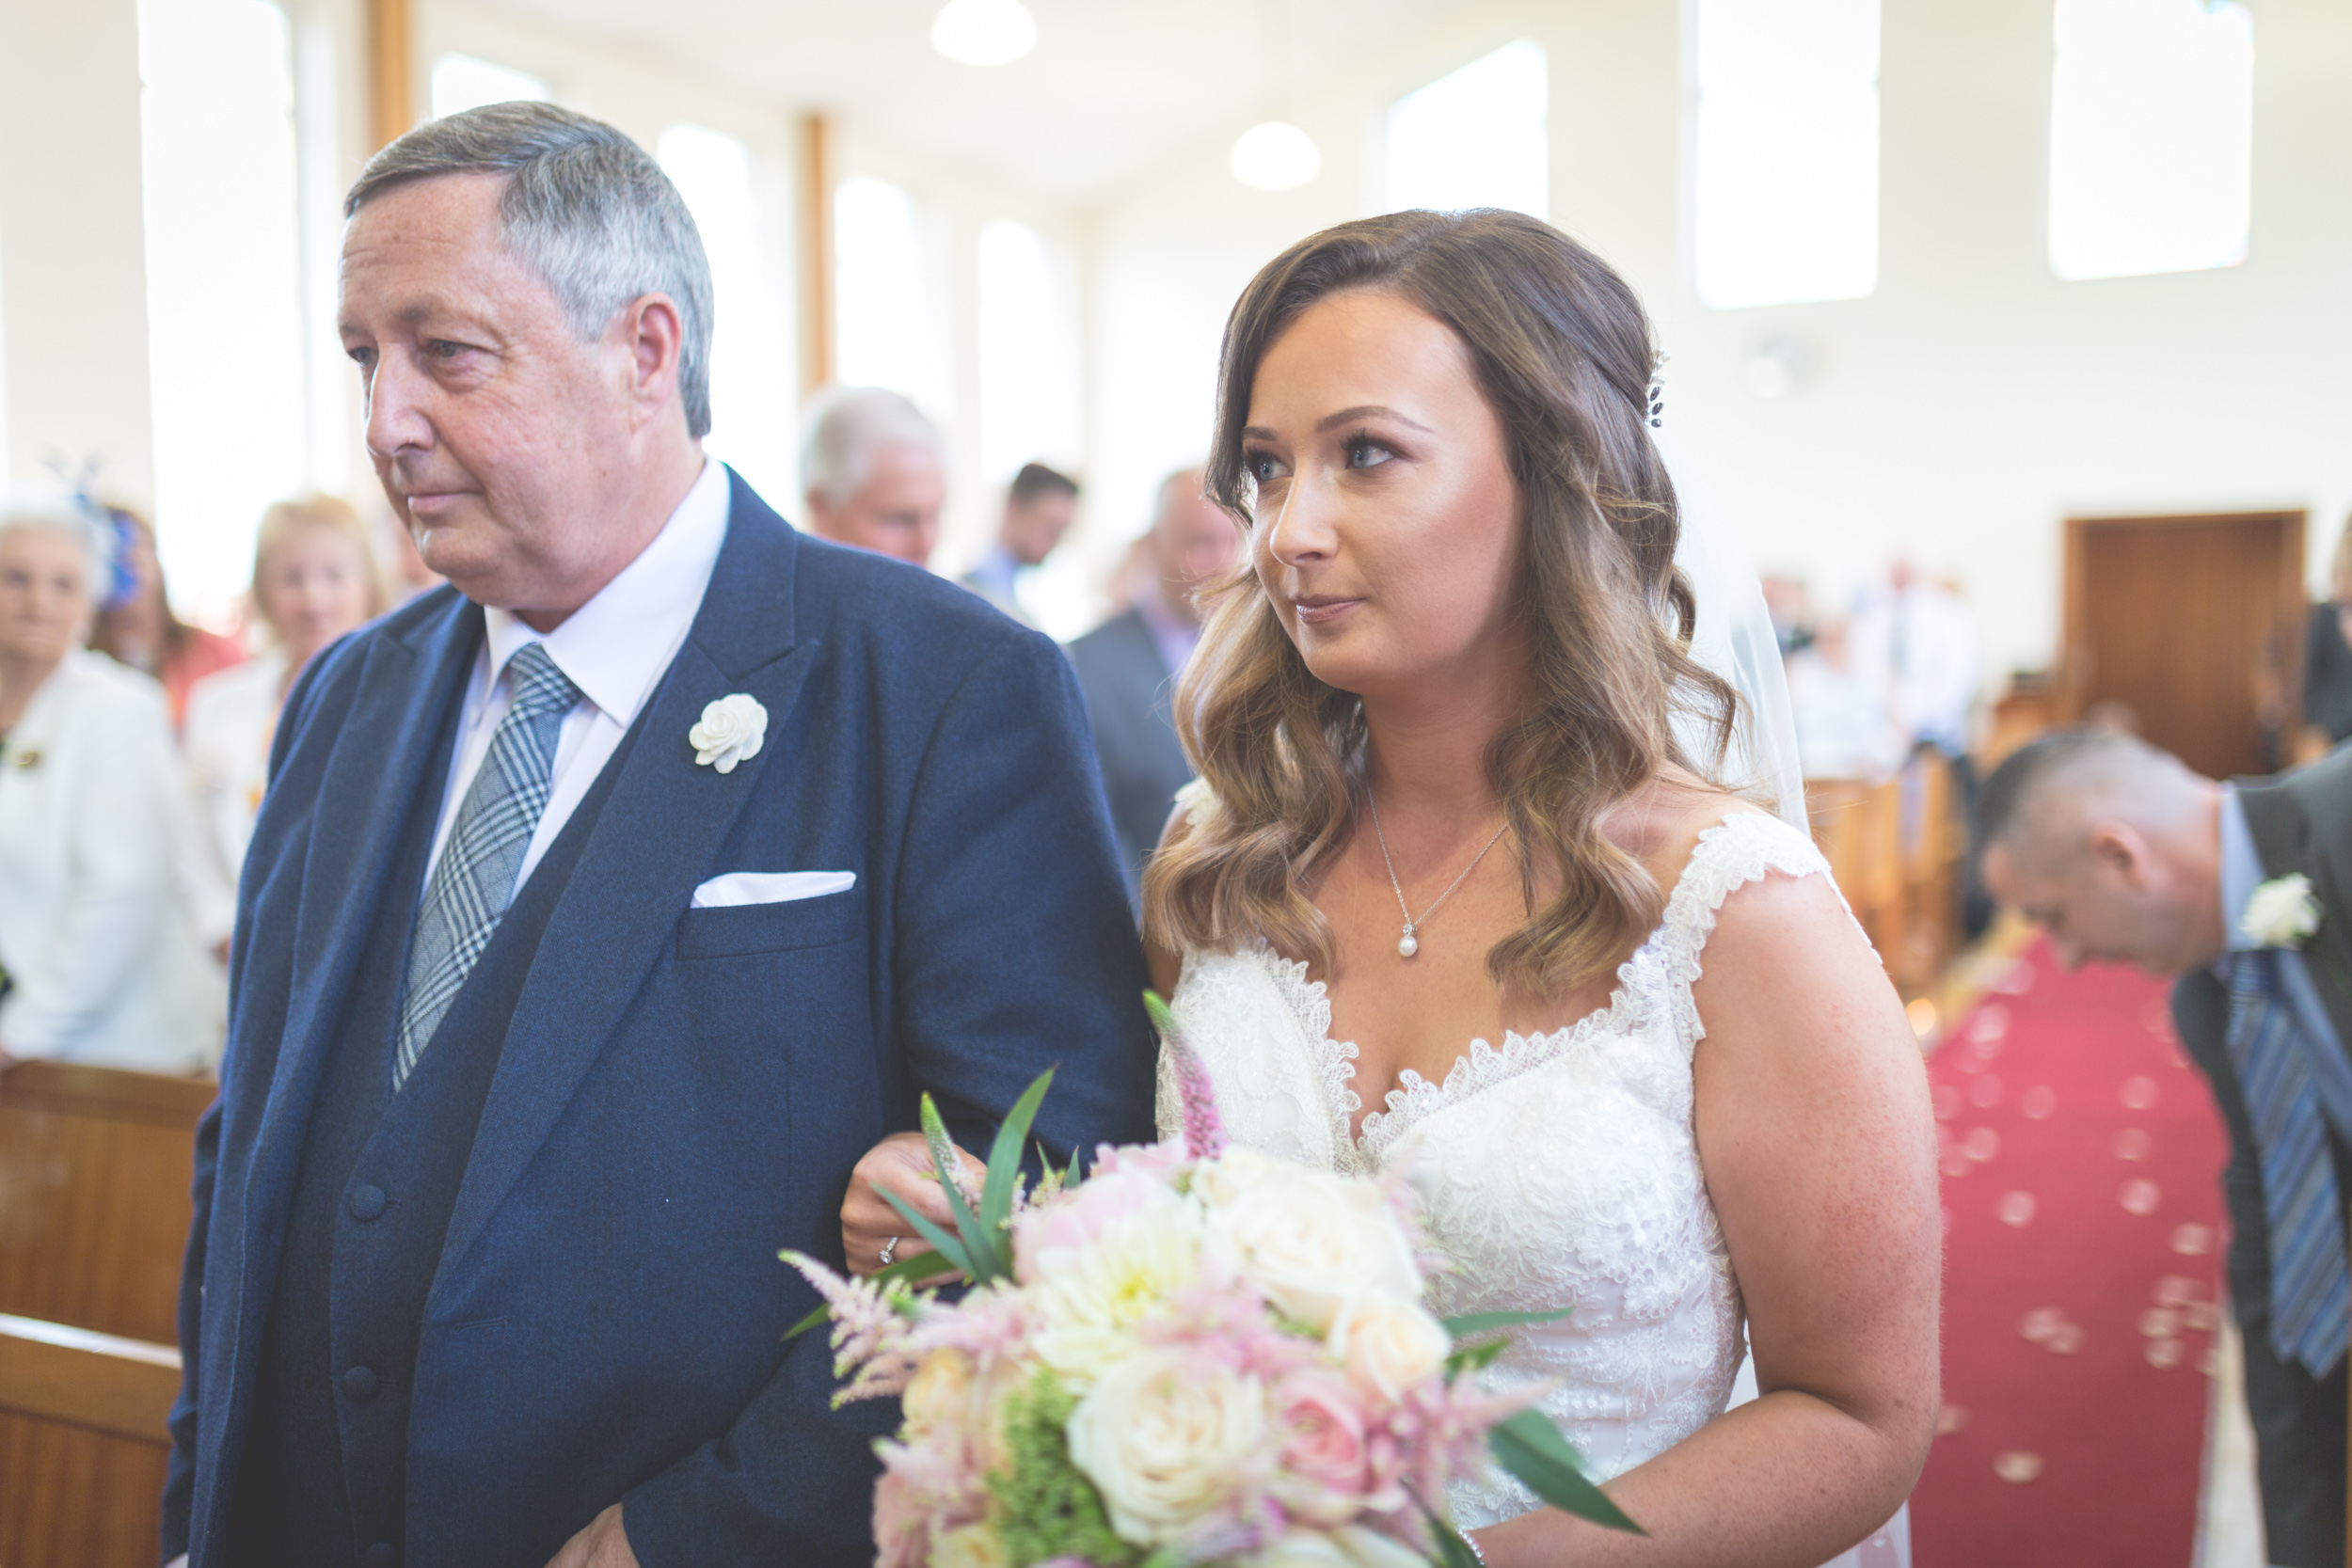 Brian McEwan | Northern Ireland Wedding Photographer | Rebecca & Michael | Ceremony-23.jpg